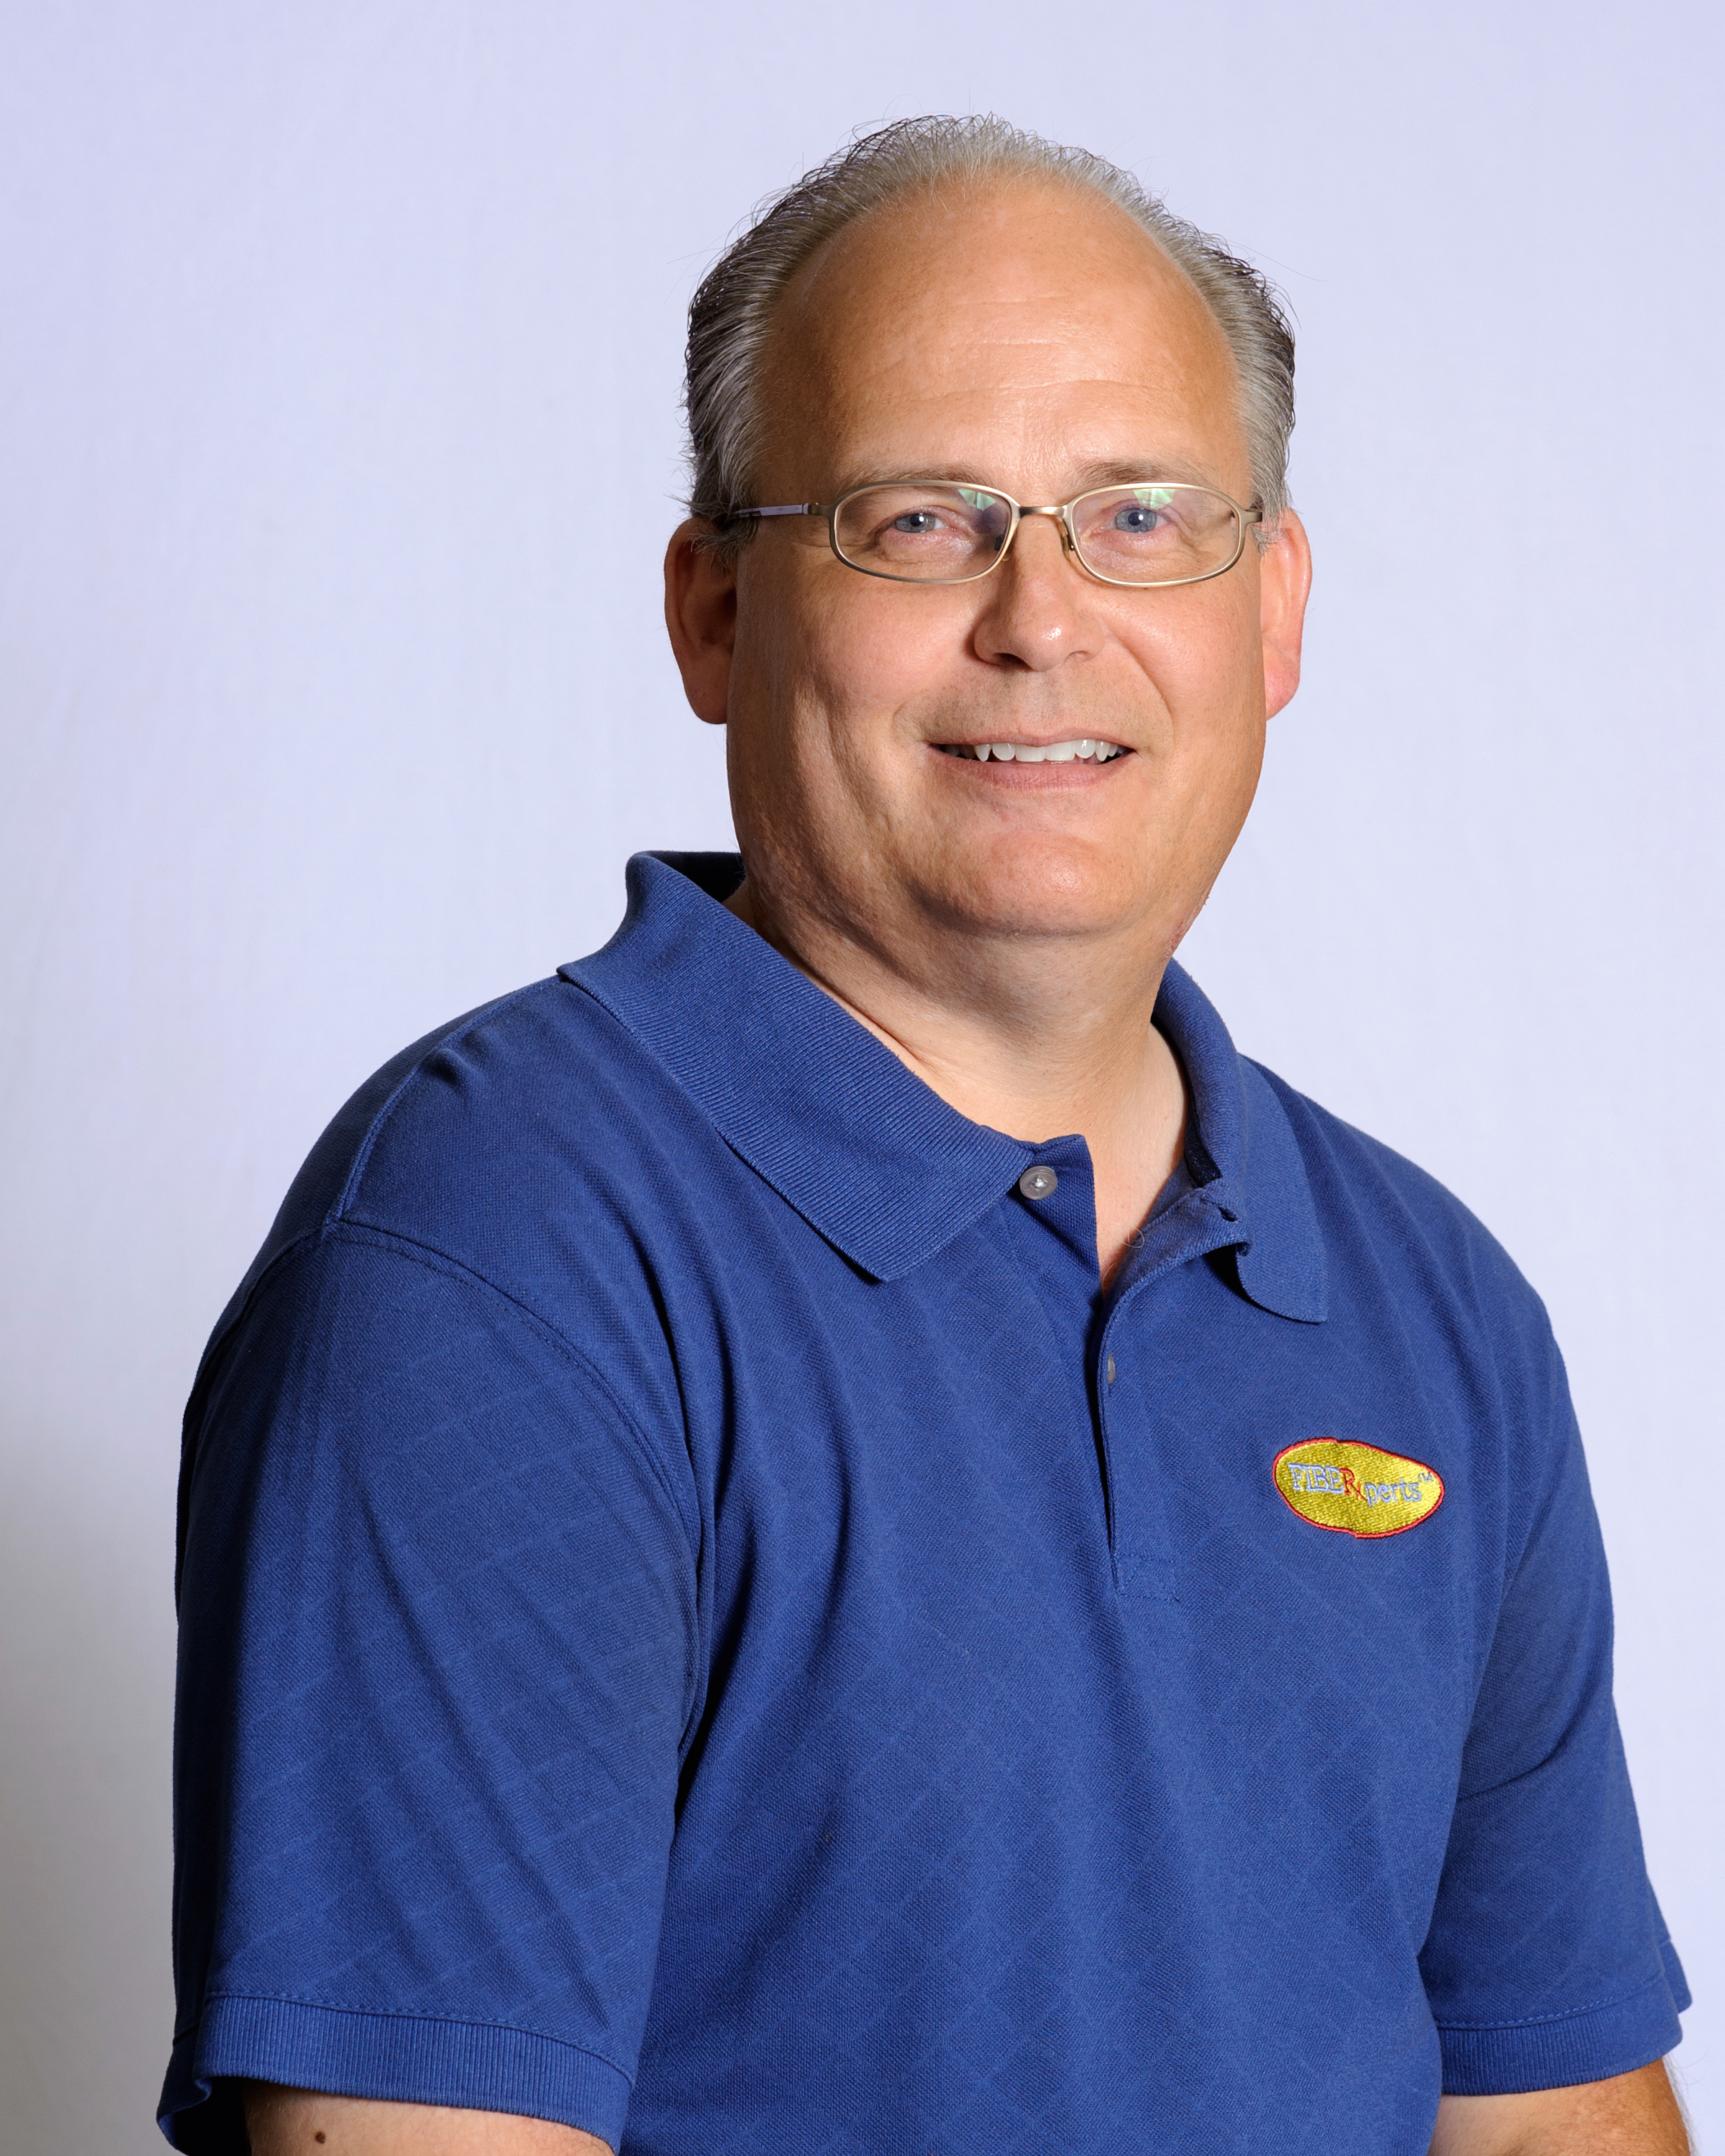 Rob Poindexter,  Lead Carpet and Upholstery Technician